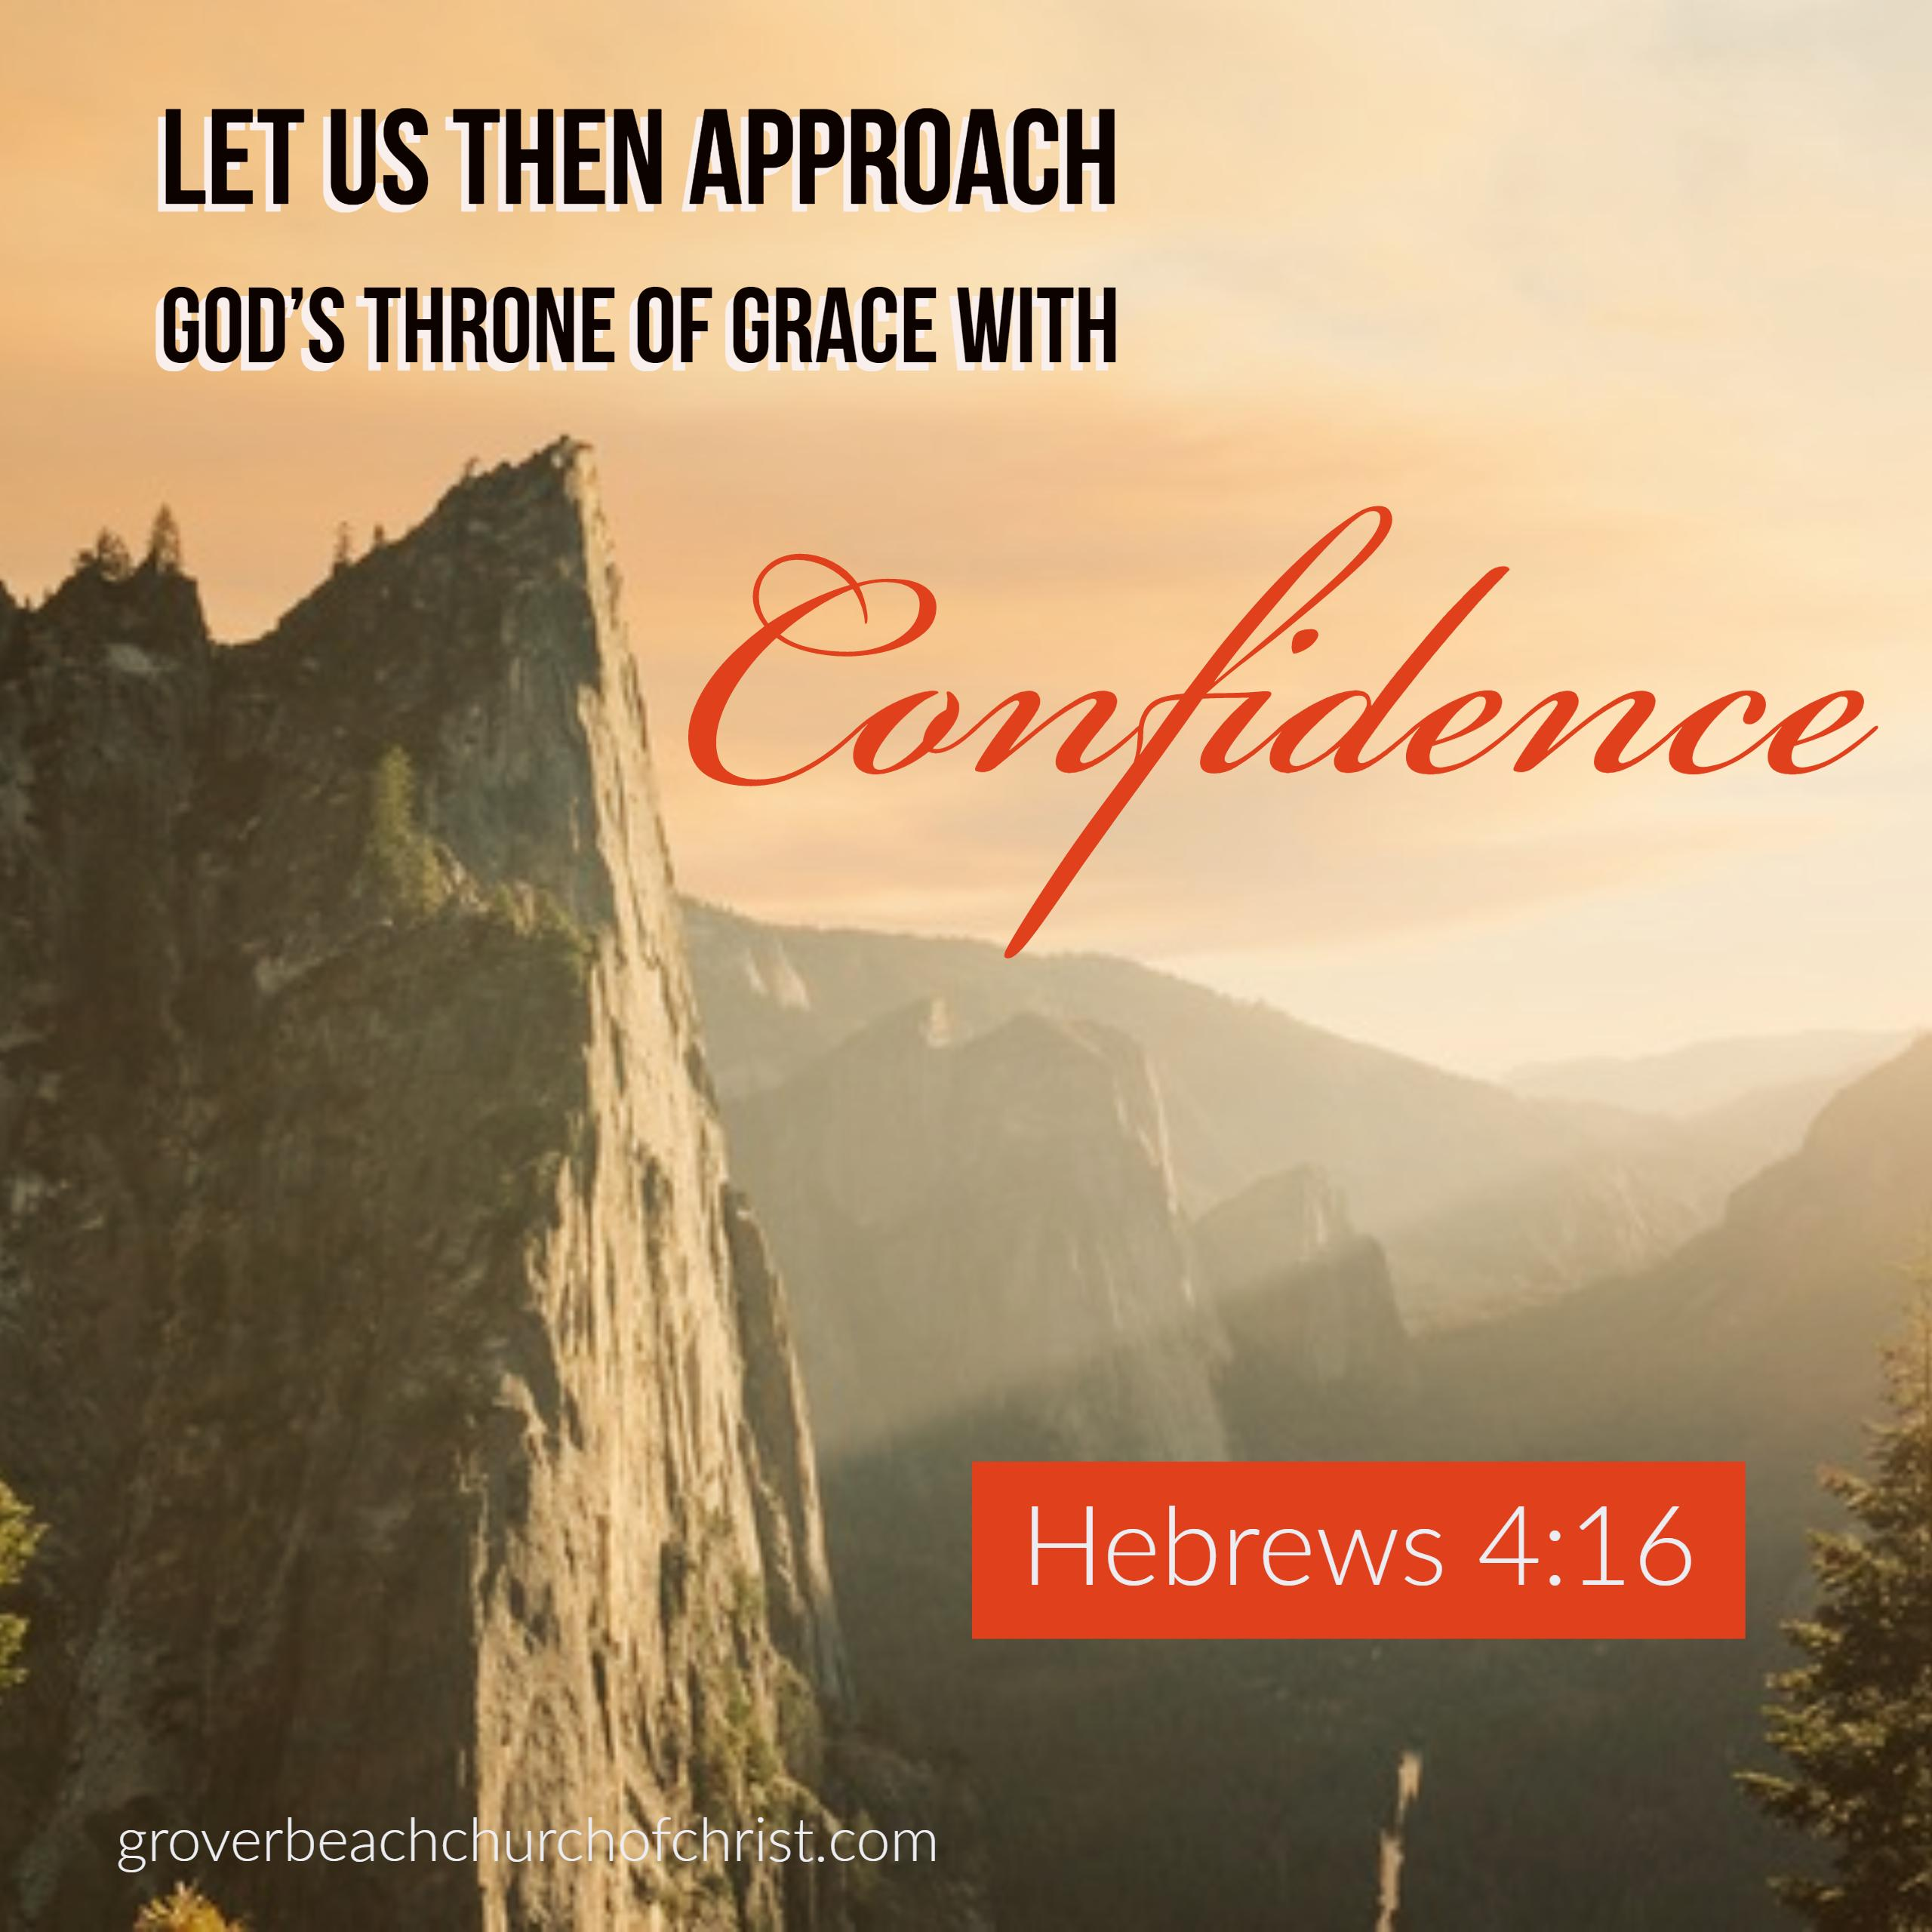 hebrews-4-16-let-us-then-approach